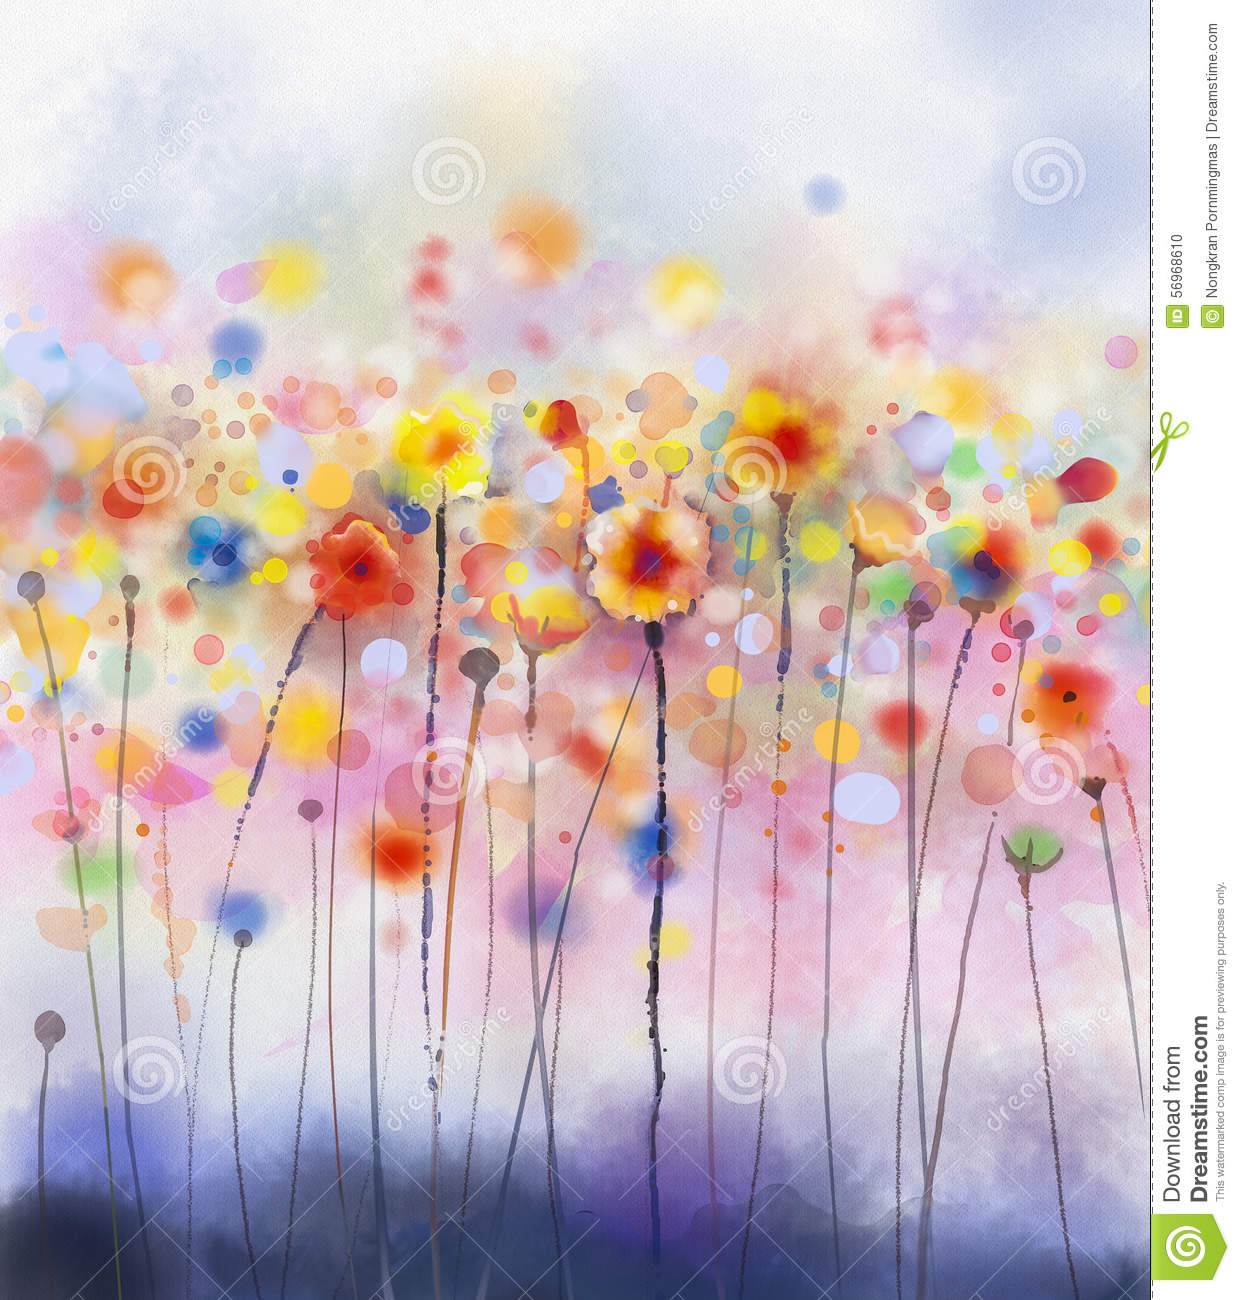 Peinture Florale Abstraite D Aquarelle Illustration Stock